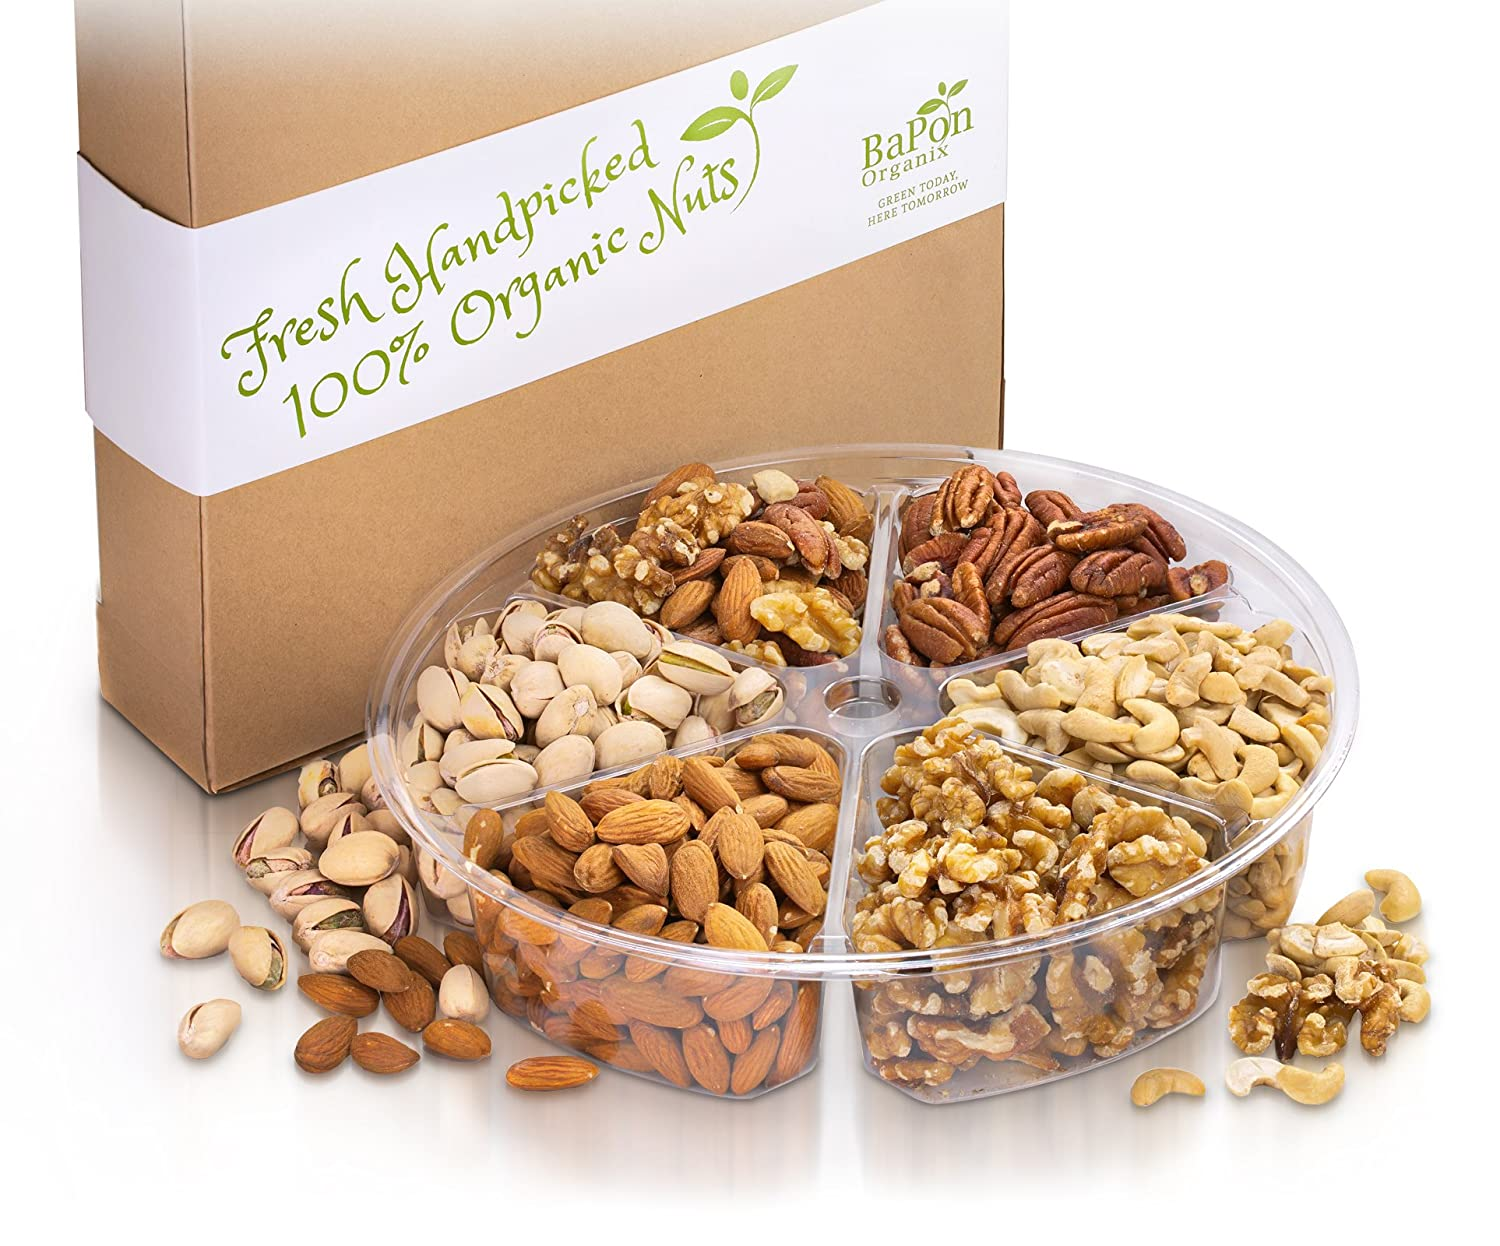 Organic Gourmet Nut Platter with Gift Box - 6 Flavor - Salted, Roasted, and  Raw Nuts Variety Pack,